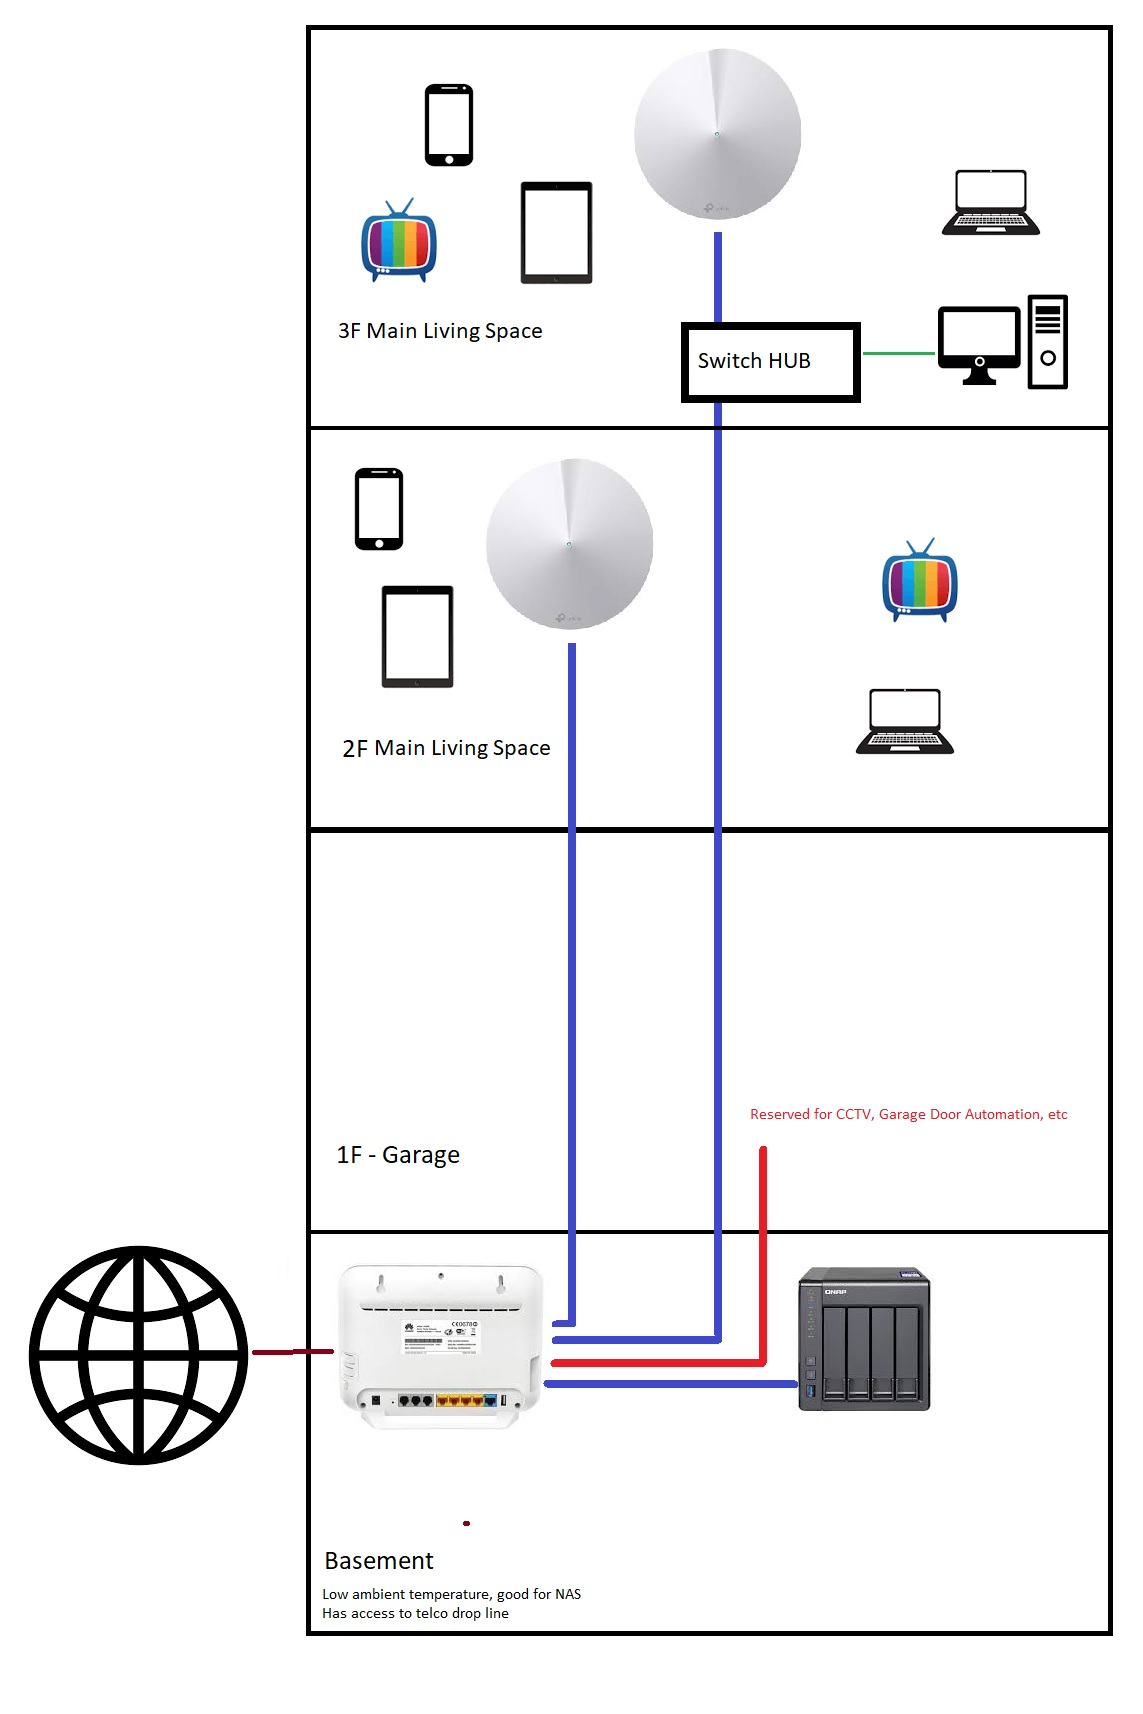 [WQZT_9871]  Need help properly wiring up my house for DECO - TP-Link SOHO Community | Need Help Understanding My Wiring Diagram |  | TP-Link Community